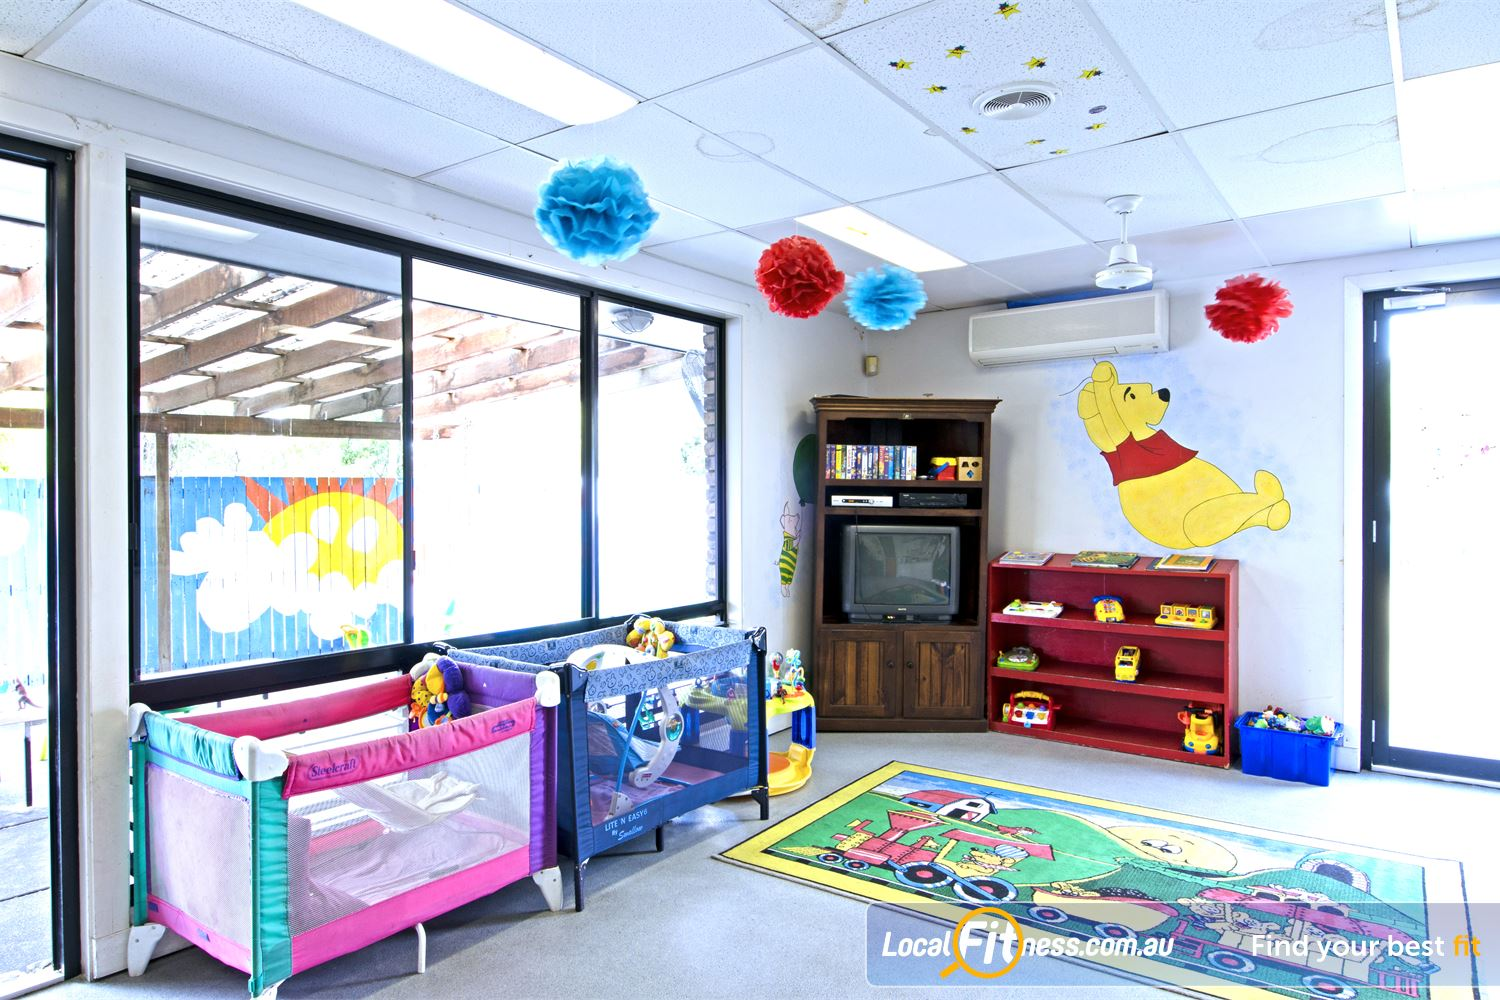 Goodlife Health Clubs Carseldine Goodlife Carseldine provides on-site child minding services.